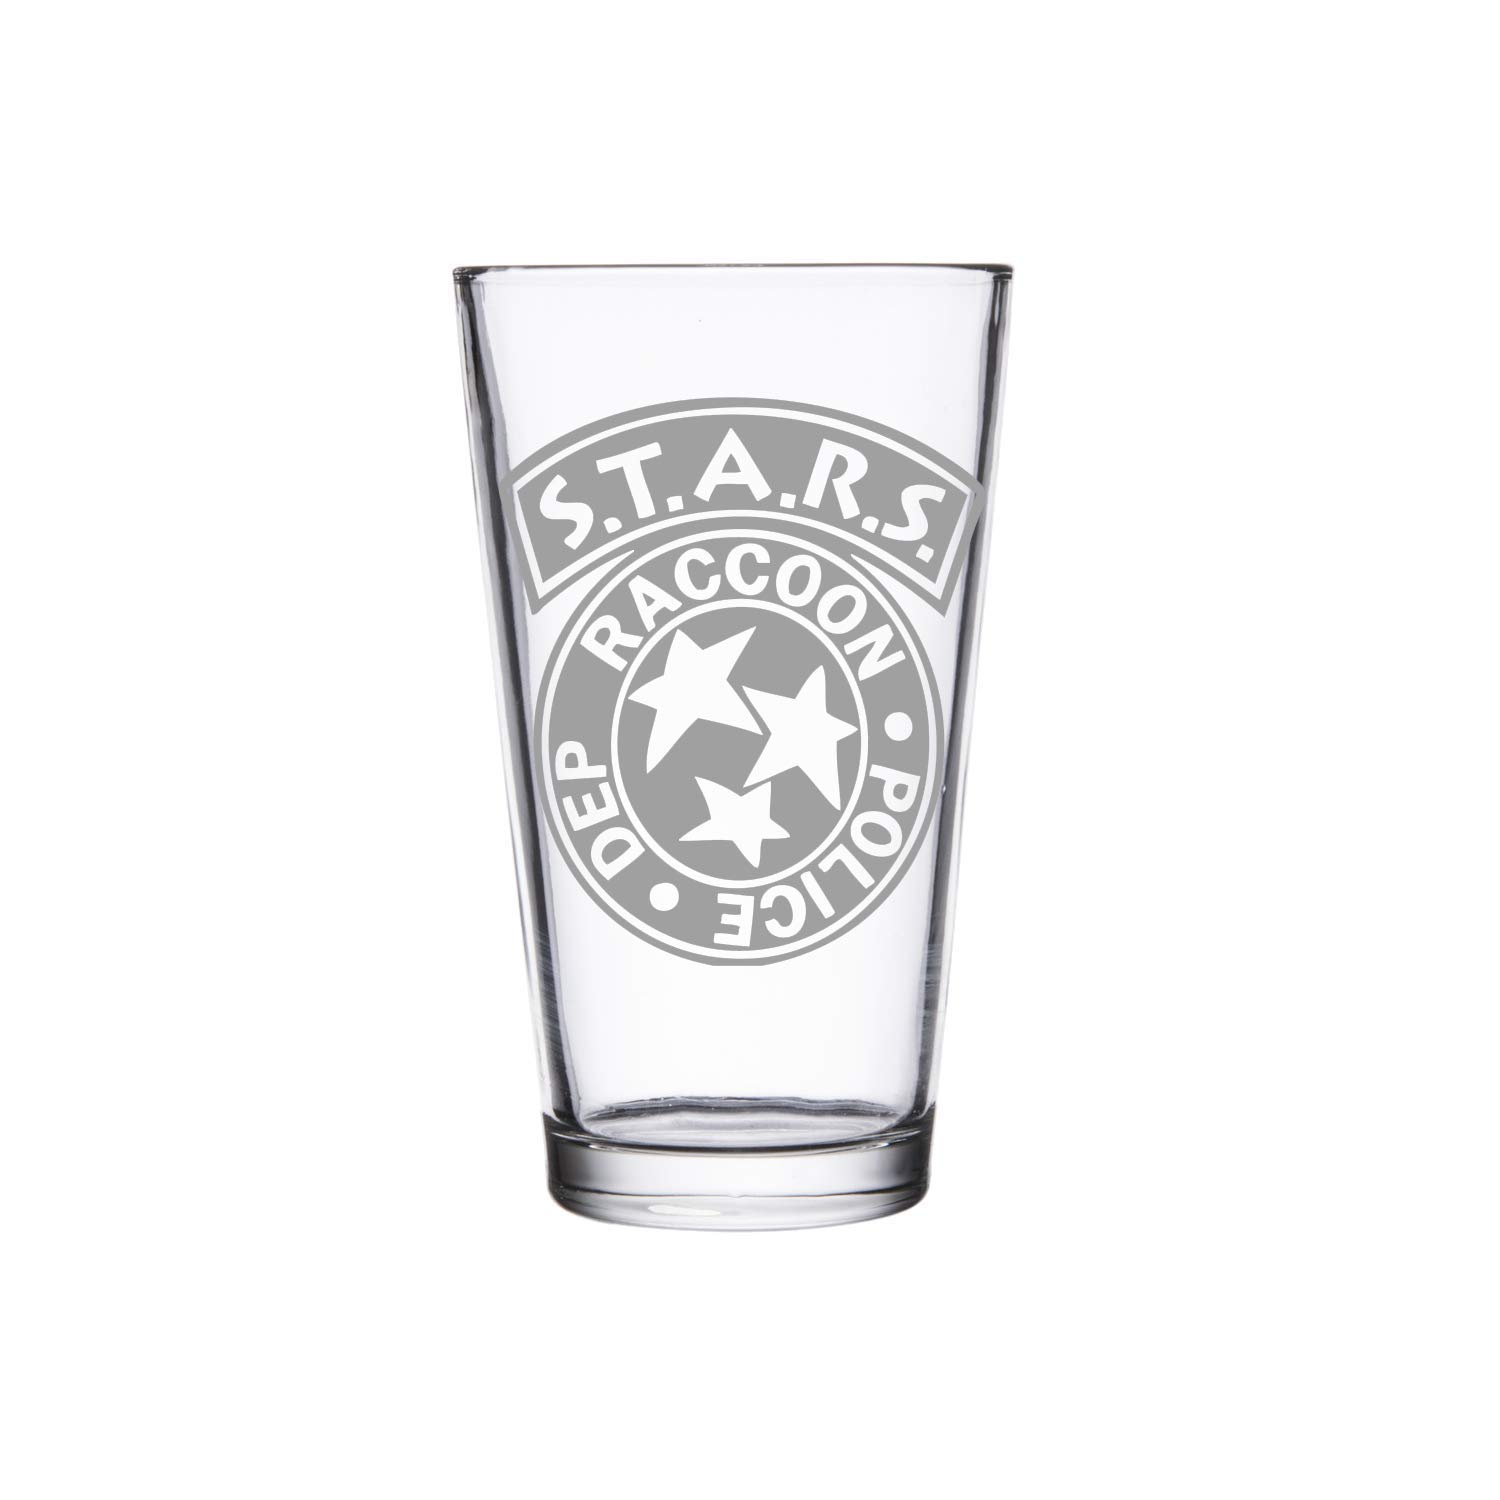 Handmade Glass Etched S.T.A.R.S Pint Glass